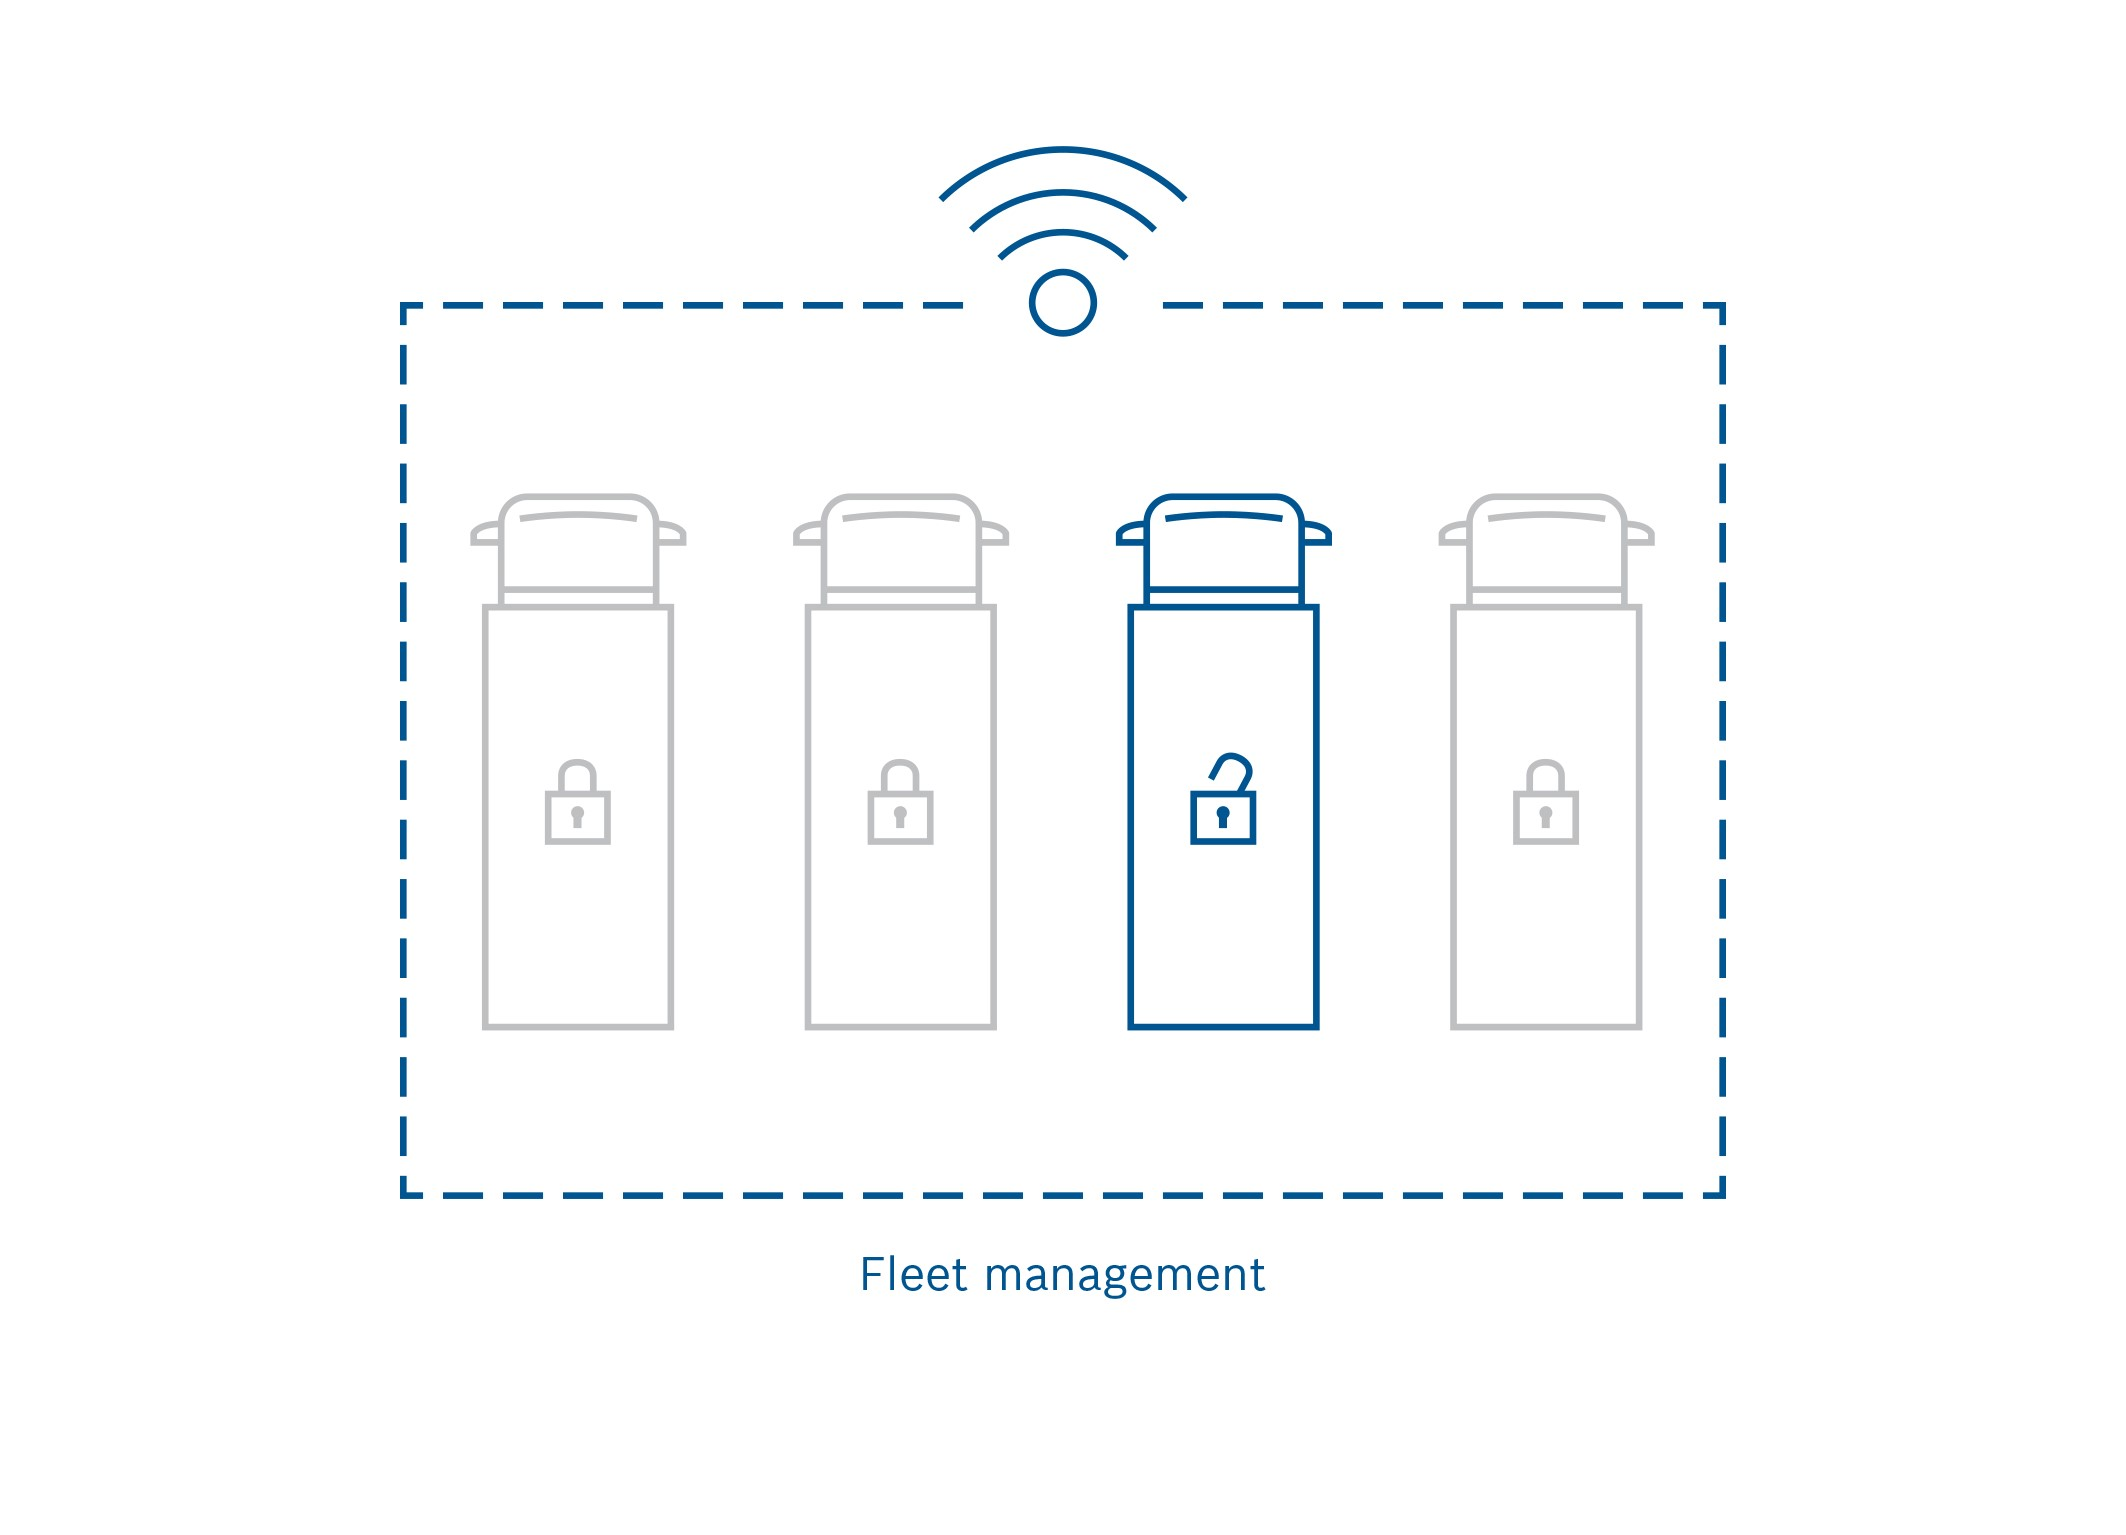 Fleet operators can now flexibly manage which drivers have vehicle access and when.